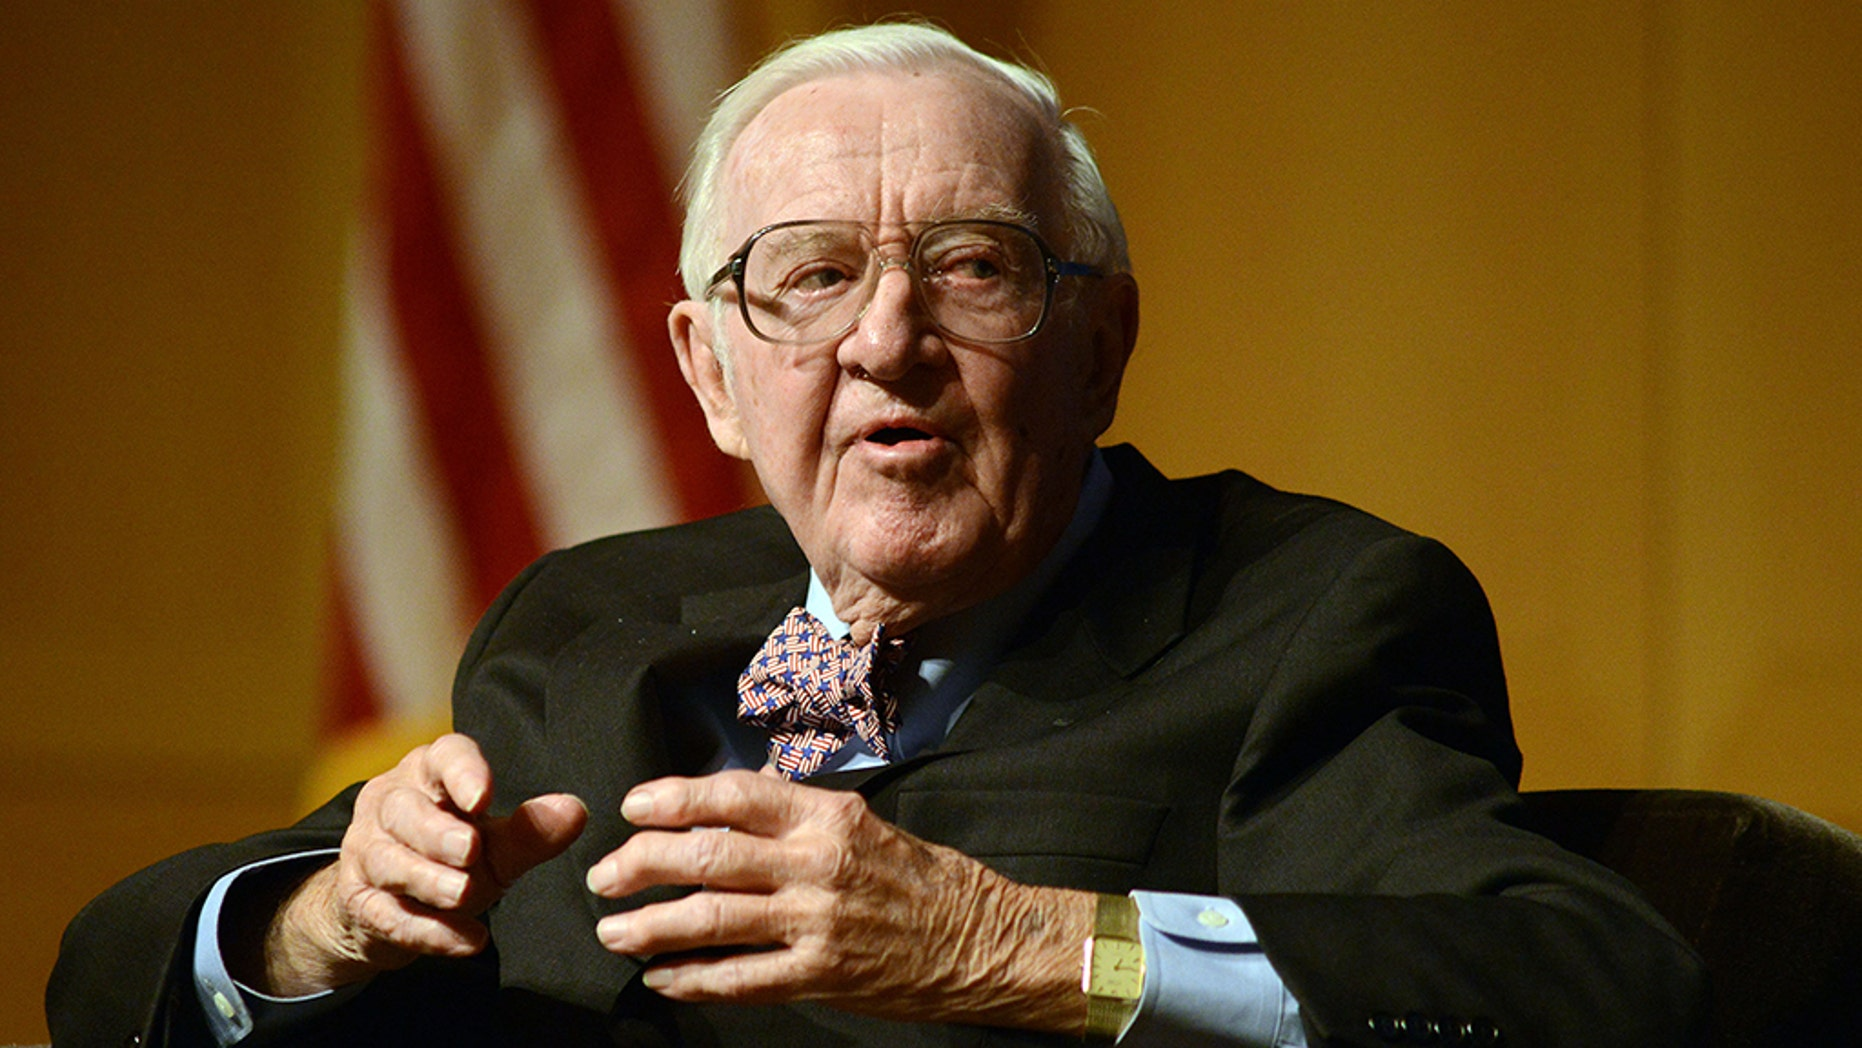 Former Supreme Court Justice John Paul Stevens has revealed in a new book what led to his retirement.